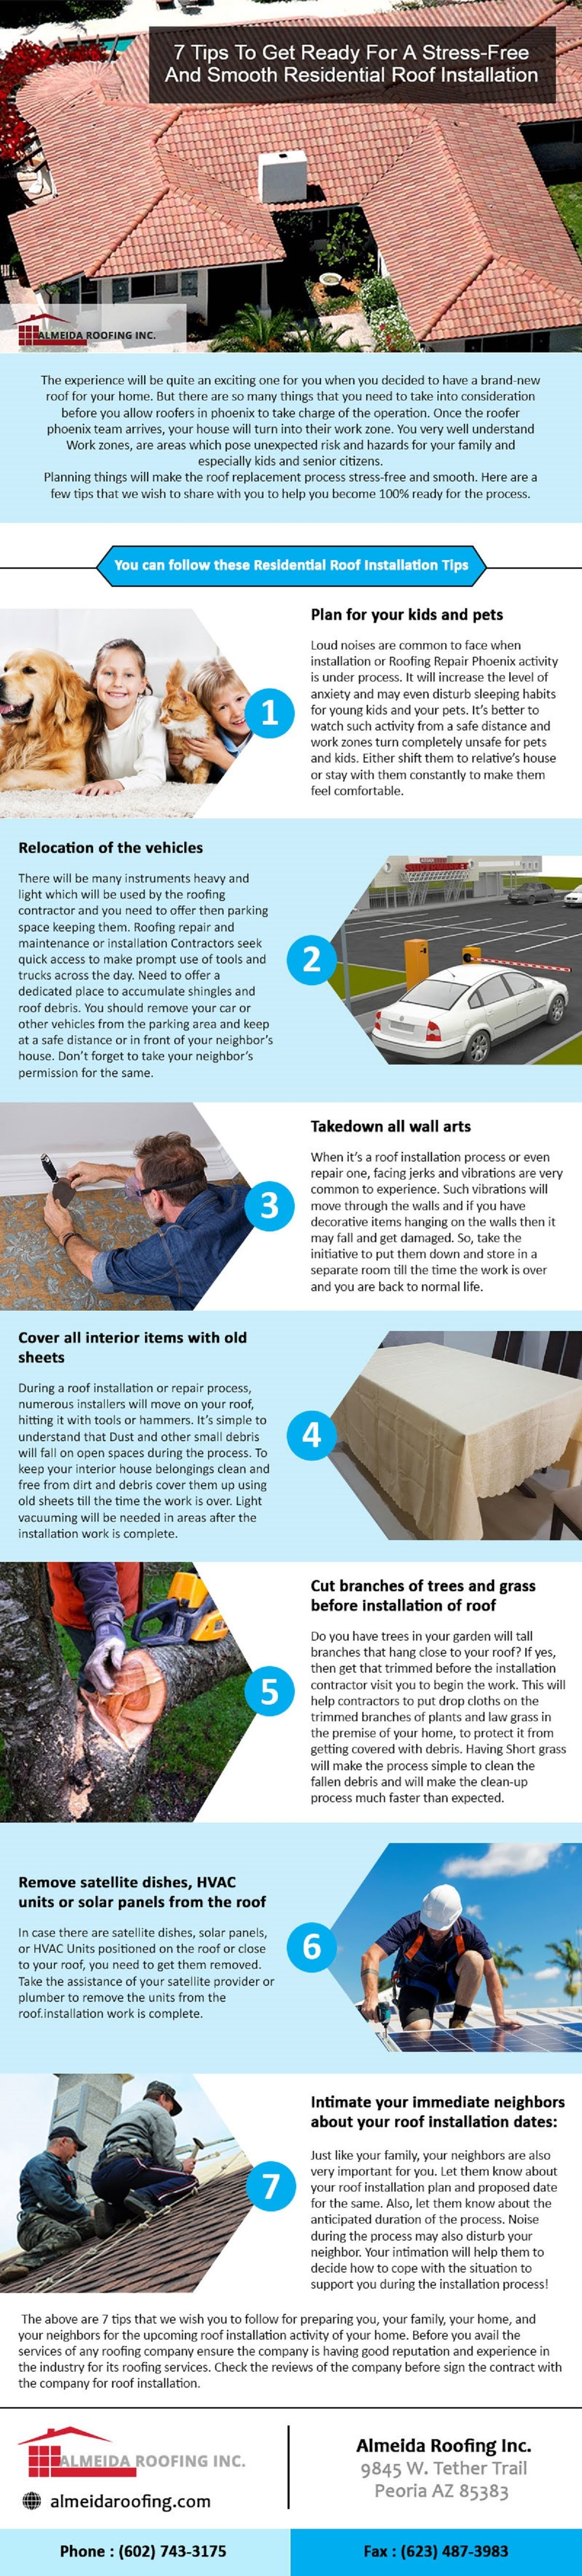 7-tips-to-get-ready-for-a-stress-free-roof-installation-infographic